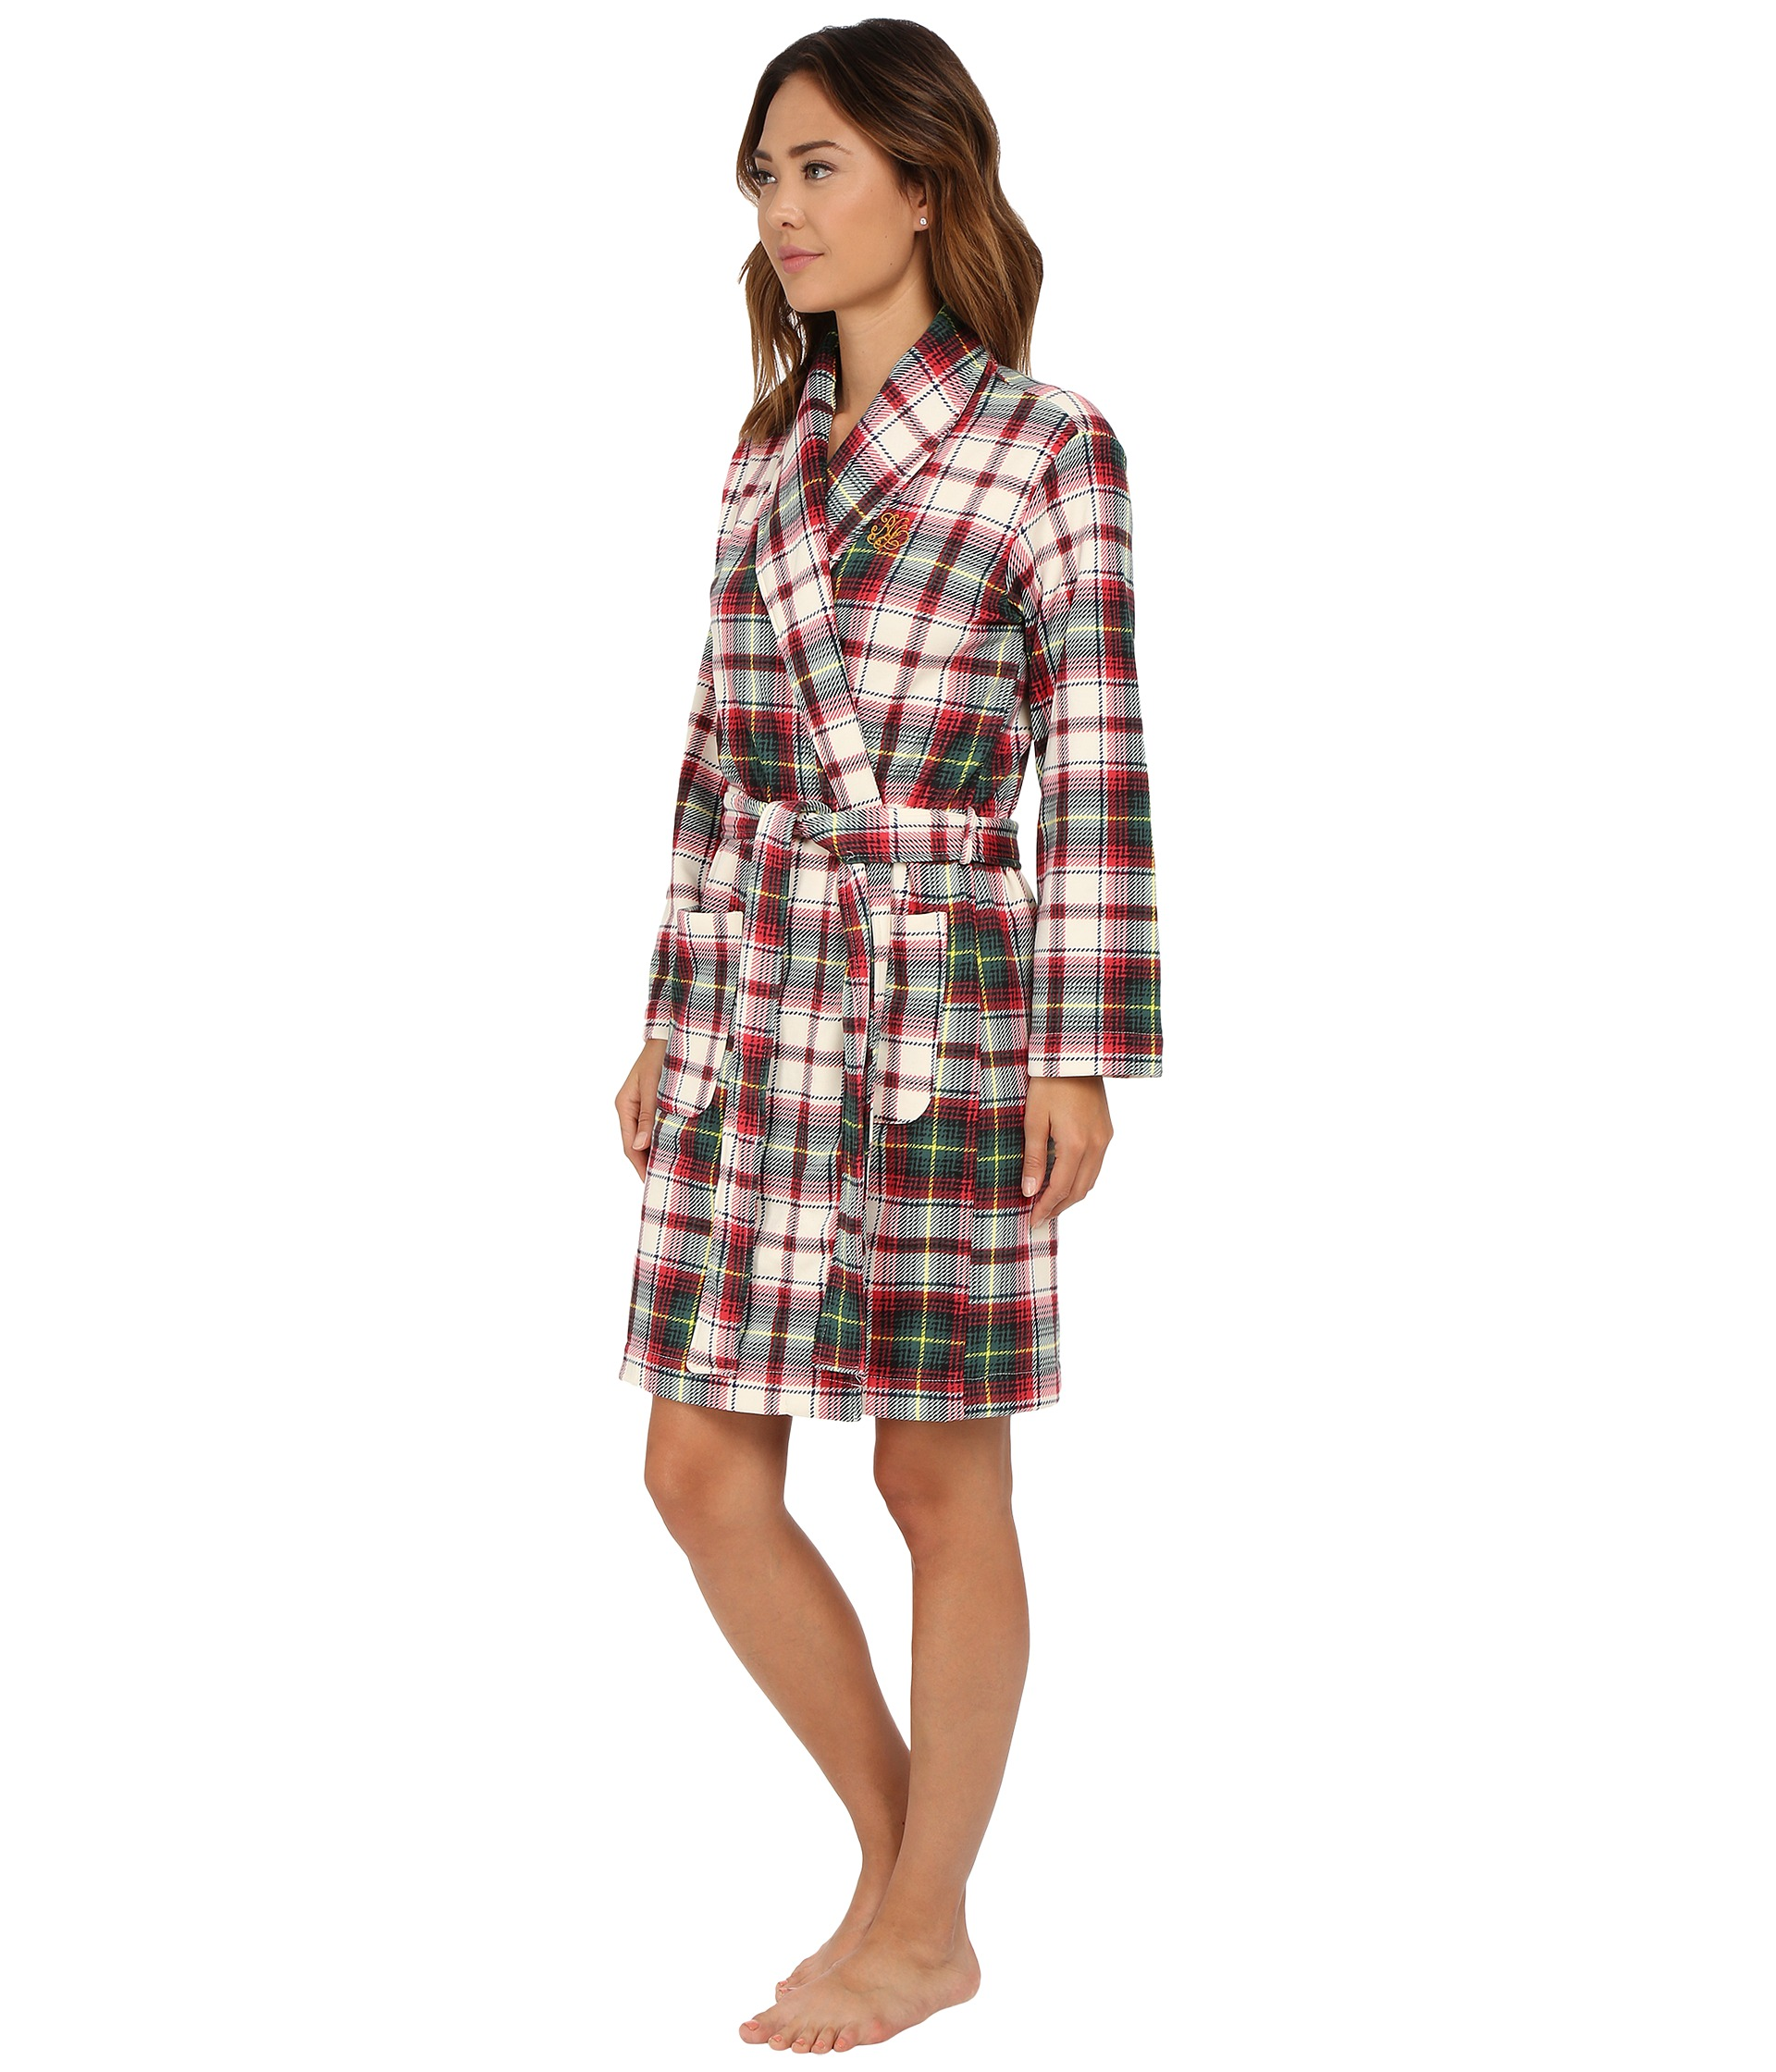 lauren by ralph lauren folded beaufort fleece short robe free shipping both ways. Black Bedroom Furniture Sets. Home Design Ideas